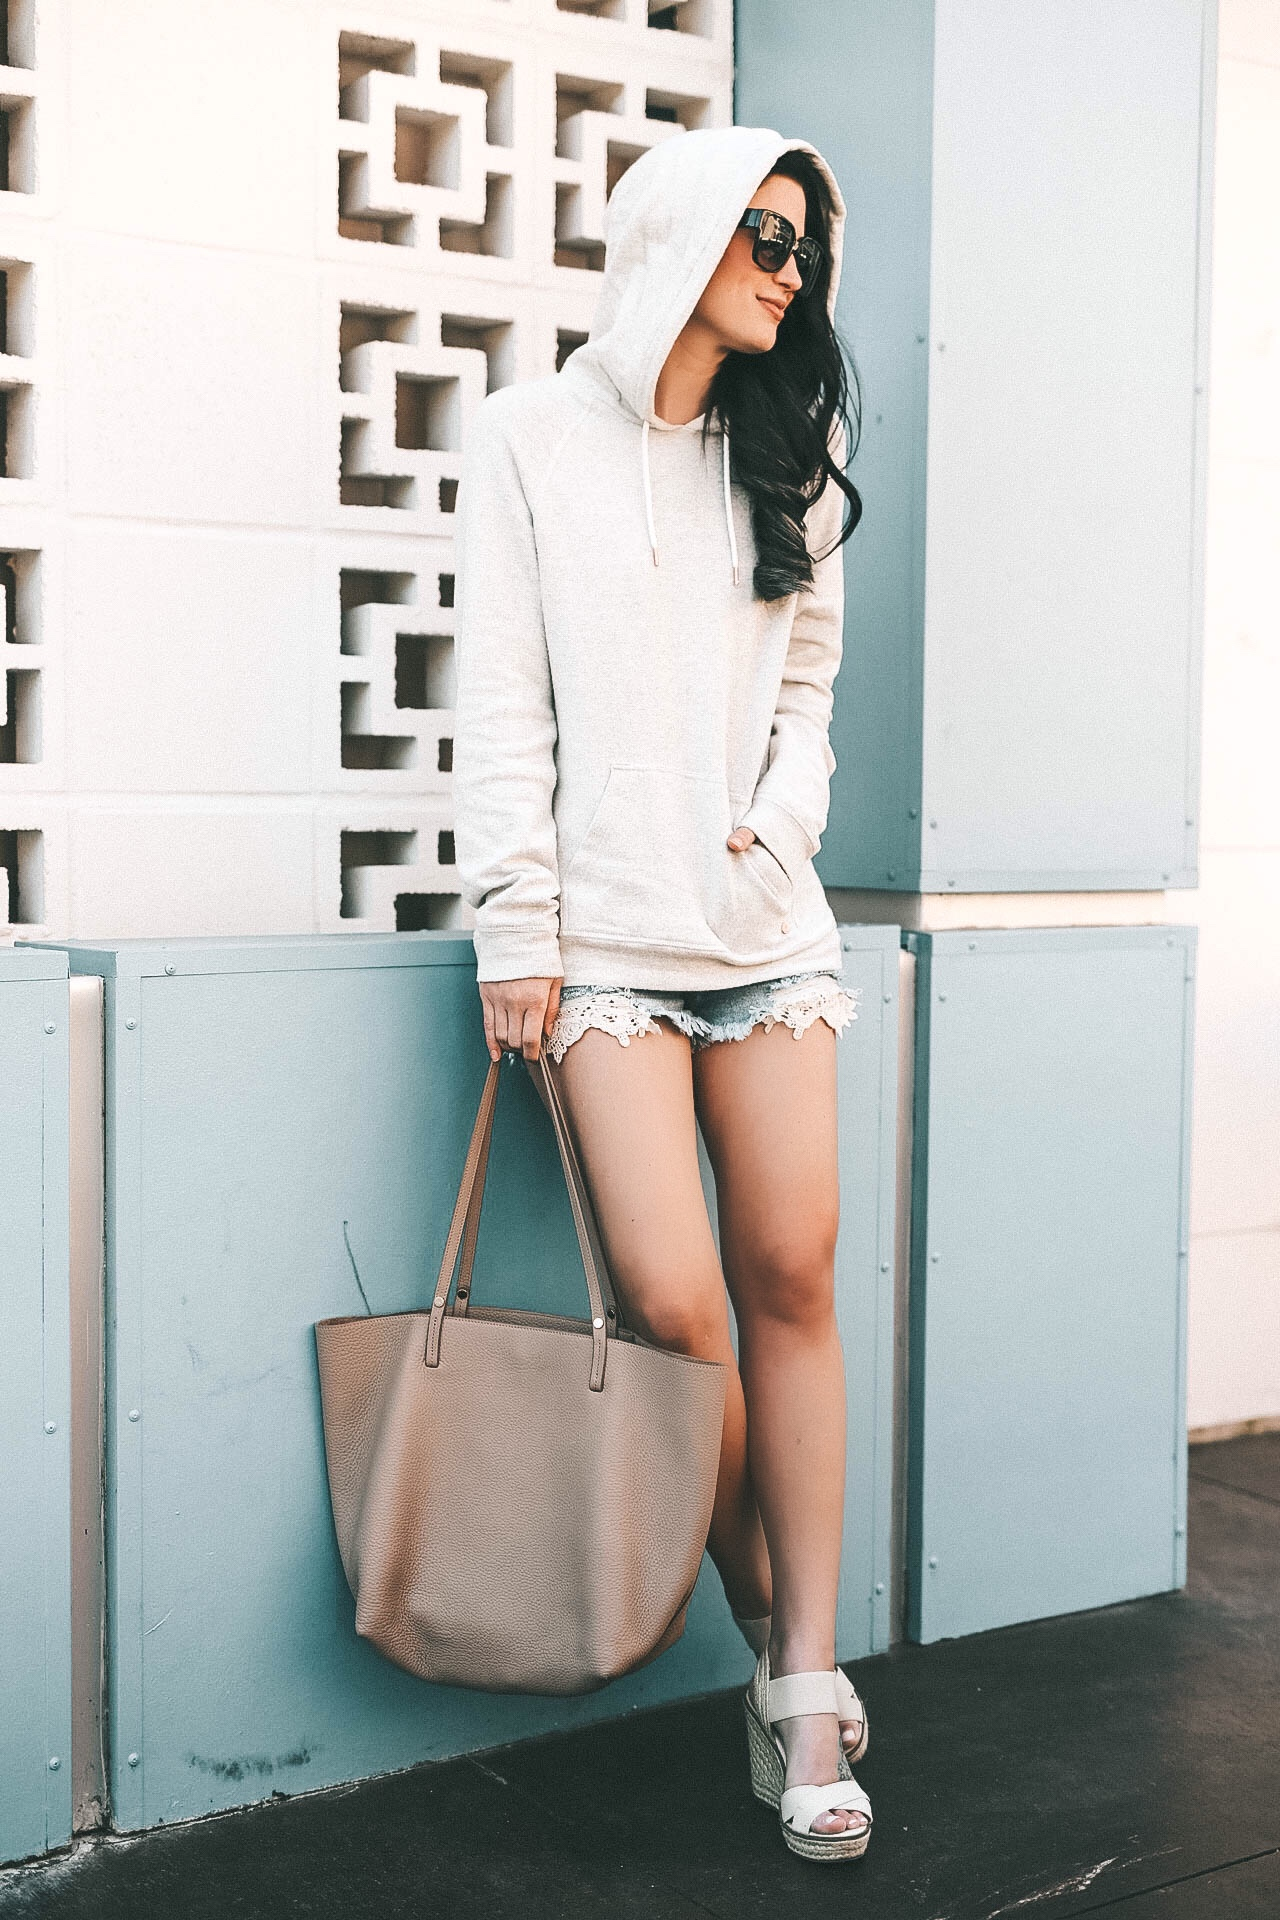 how to pull off the athleisure trend for Spring & Summer w/ Zappos and Cotton || Dressed to Kill #athleisure #summerstyle #shortsoutfit - Athleisure Trend for Summer w/Cotton & Zappos by popular Austin style blogger Dressed to Kill